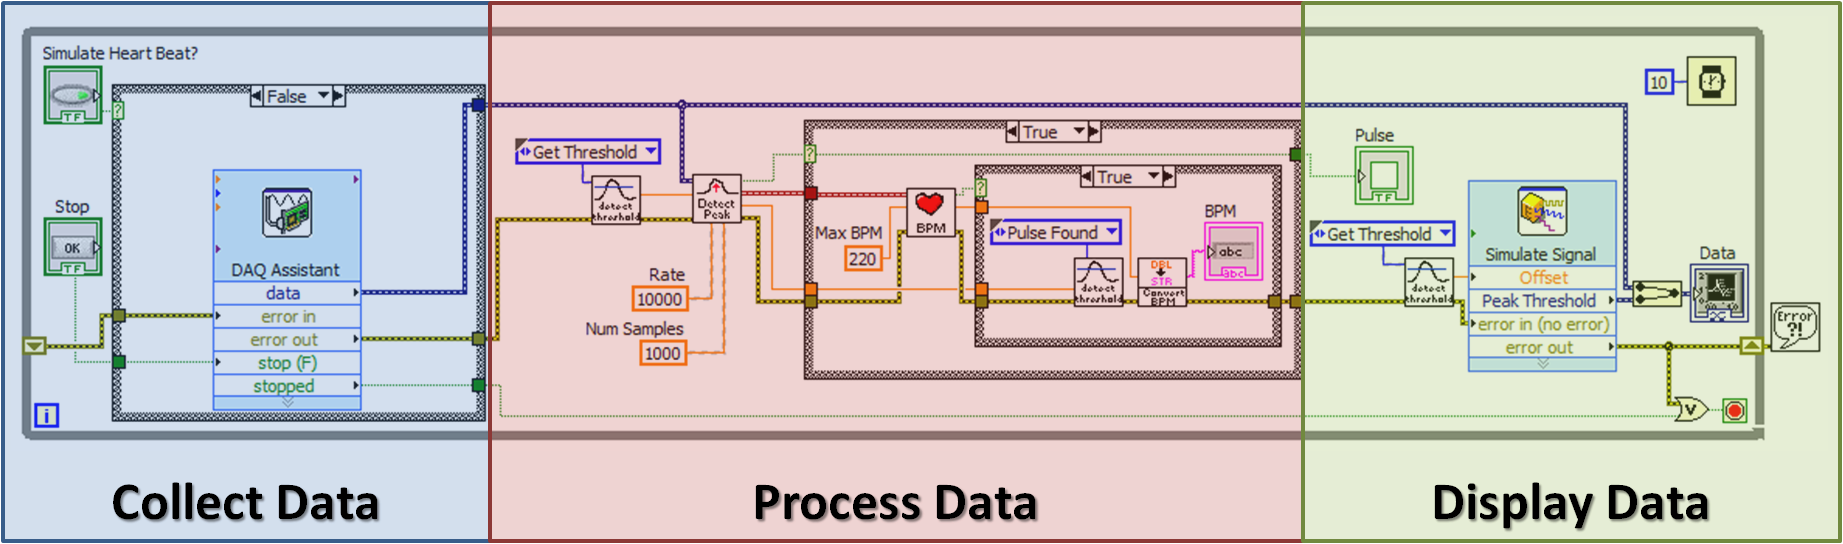 build your own heart rate monitor  part 4 of 4  software design